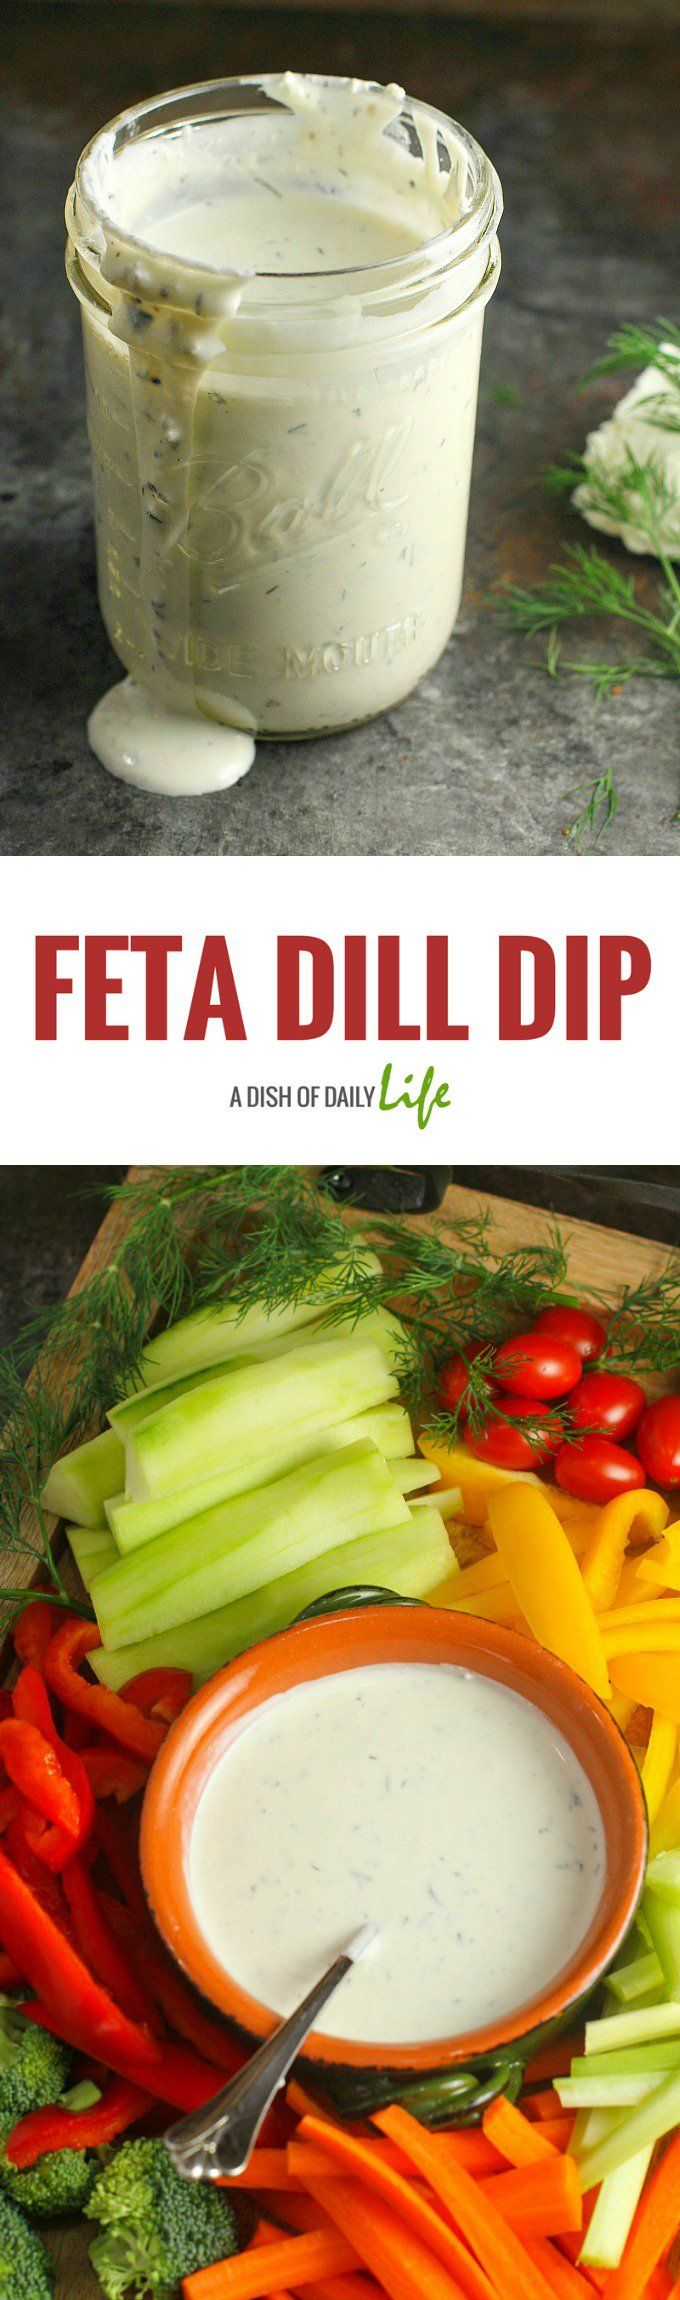 This homemade Feta Dill Dip is a perfect addition to a Crudité platter for any party —and works great as a salad dressing as well! #ad @hphood  #Appetizer | #Dip | #Feta | #Dill | #SaladDressing